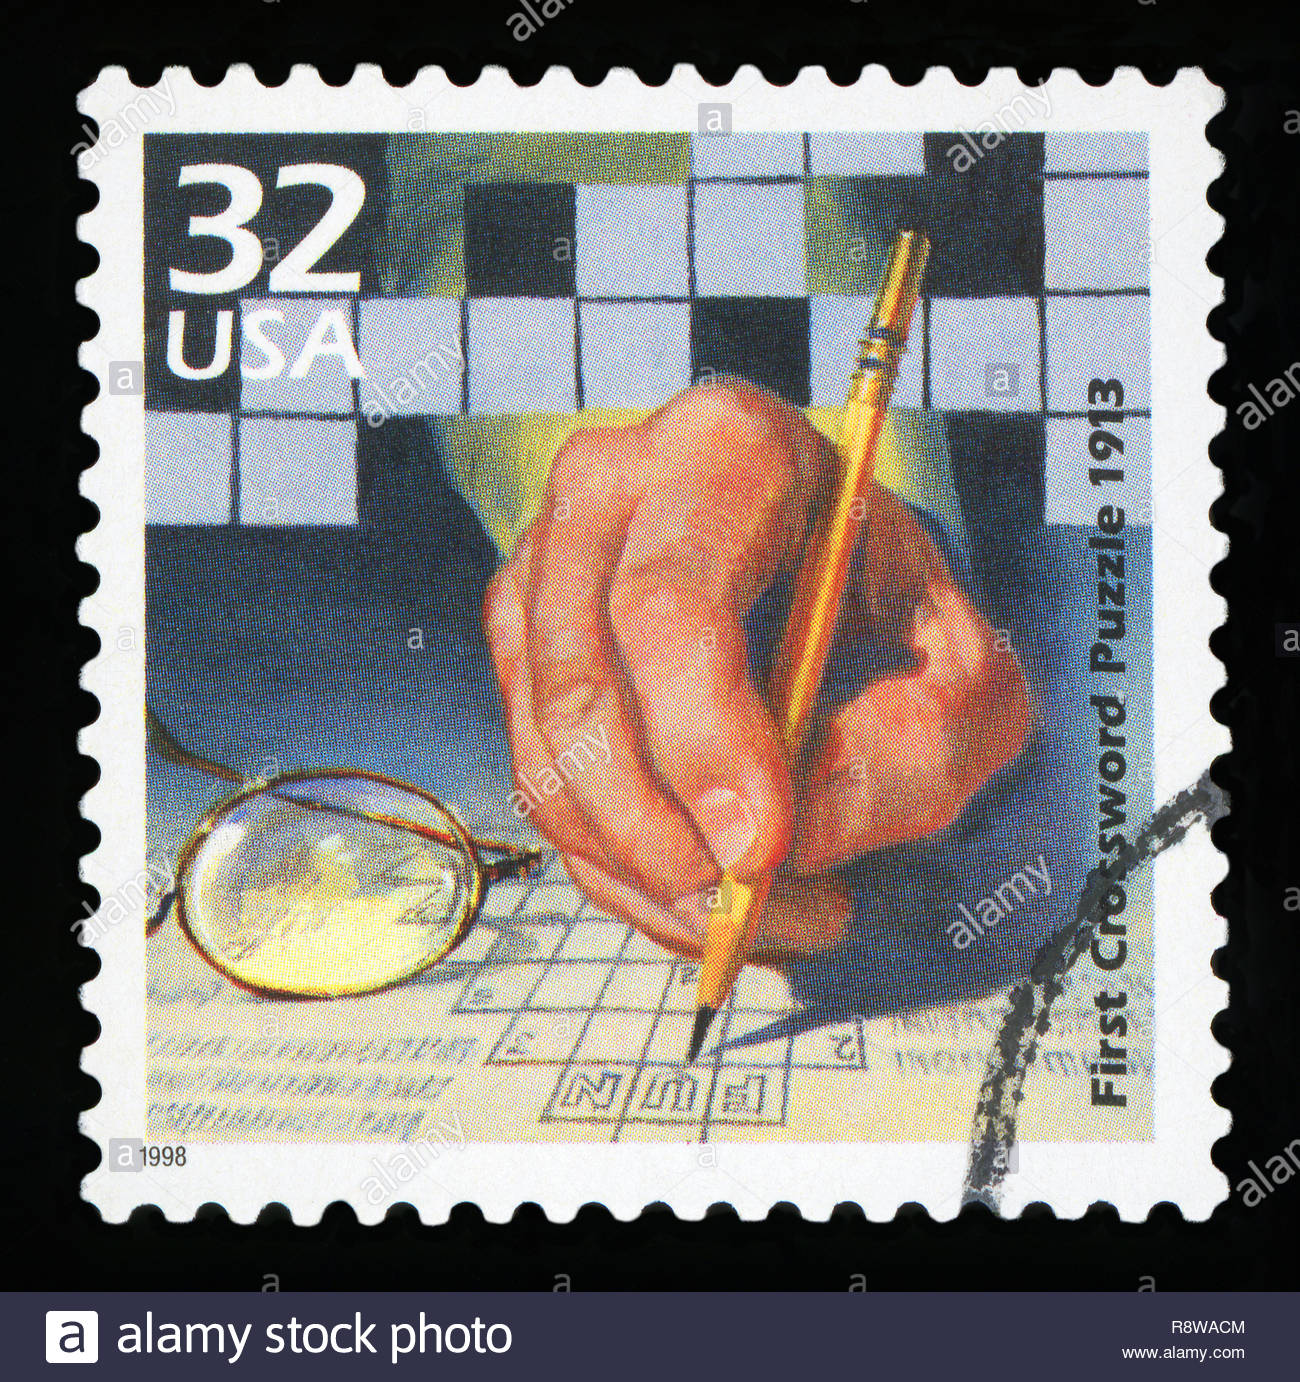 UNITED STATES OF AMERICA - CIRCA 1998: A stamp printed in USA shows First crossword puzzle published, 1913, series Celebrate the Century, 1910s, circa - Stock Image